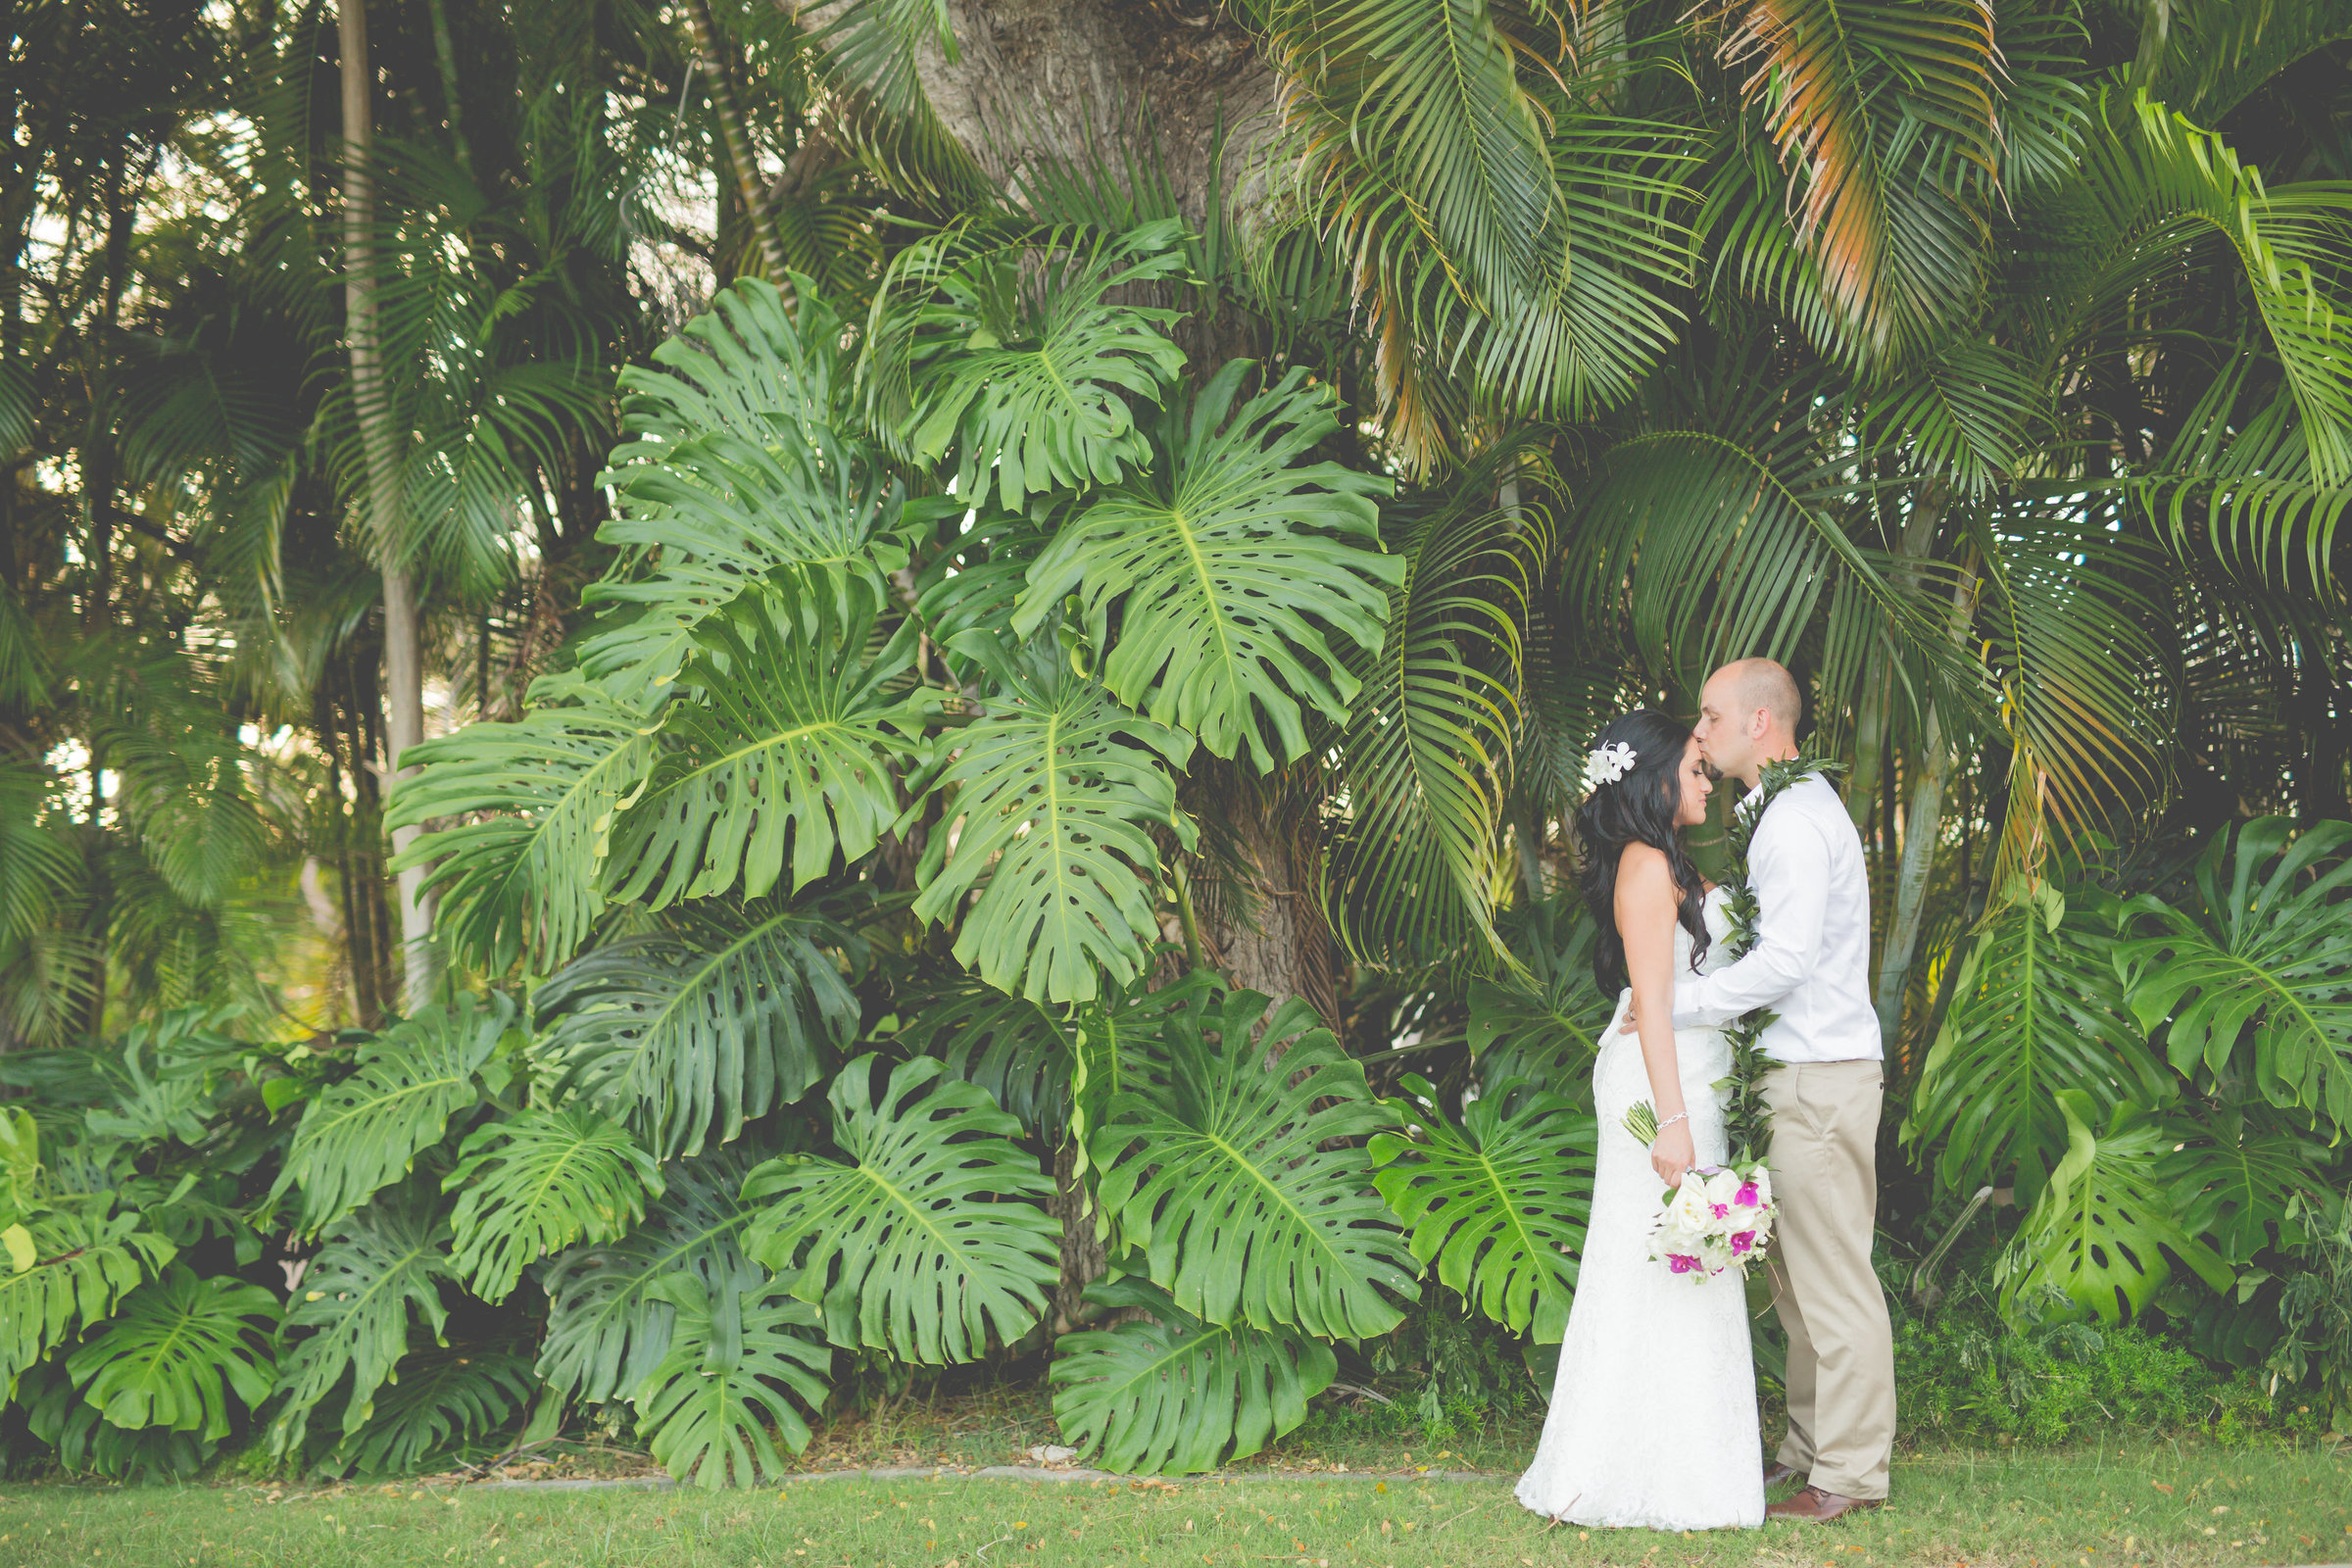 Oahu Wedding Photography by our team of Oahu wedding Photographers